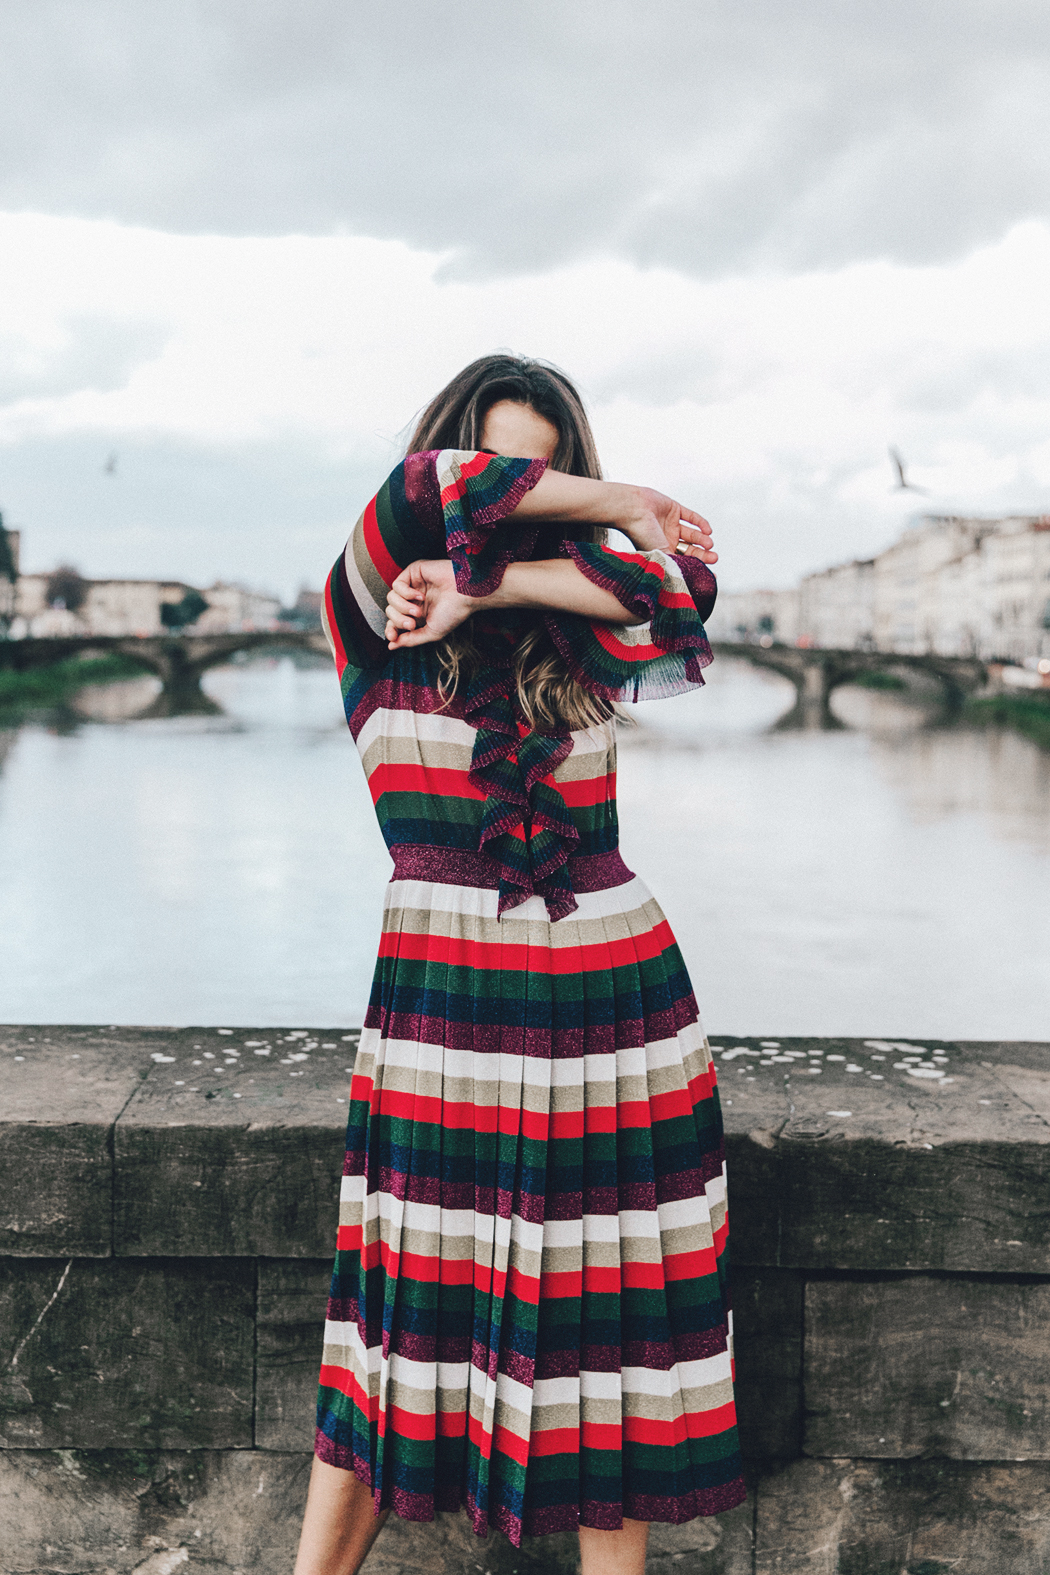 Firenze4Ever-Luisa_VIa_Roma-Gucci_Striped_Dress-Gucci_Gold_Sandals-Outfit-Florence-Street_Style-43